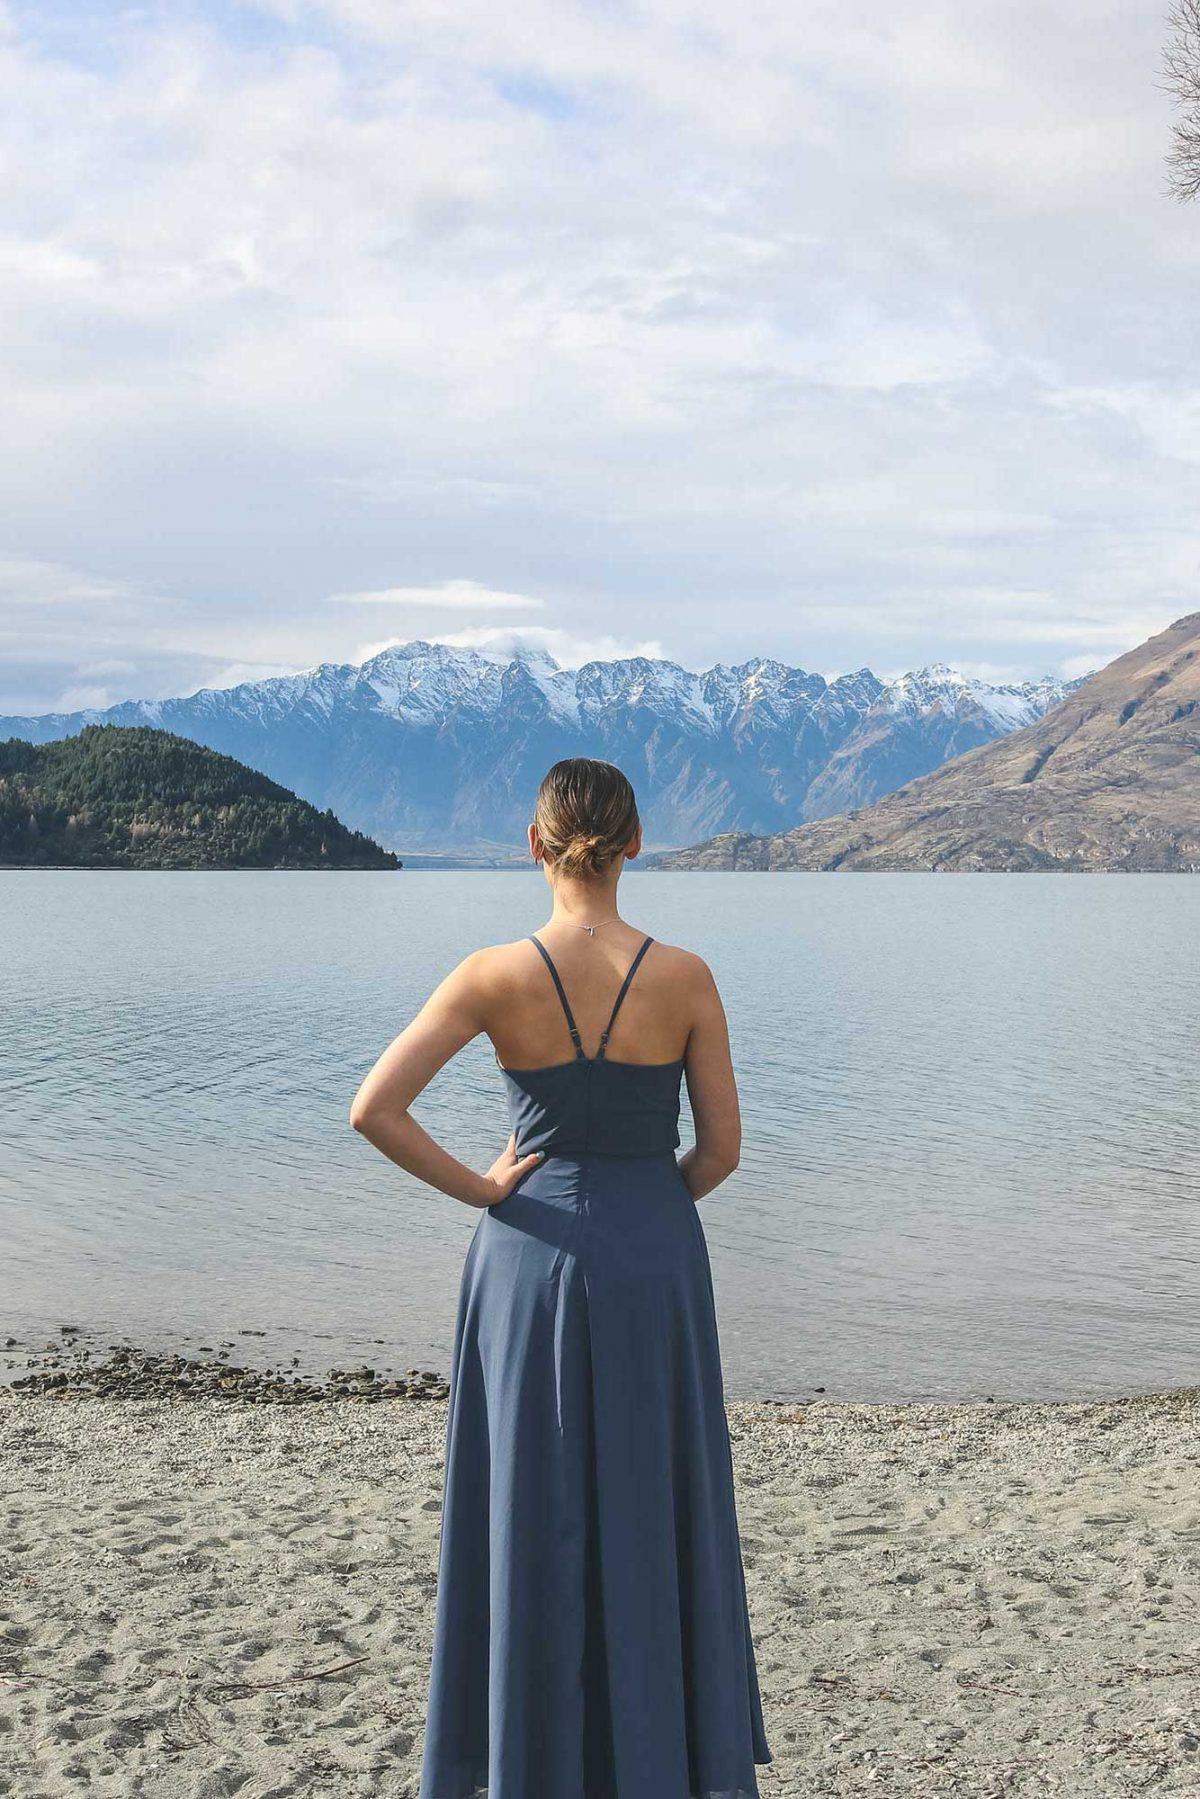 Facing a mountain view in Annabelle dress